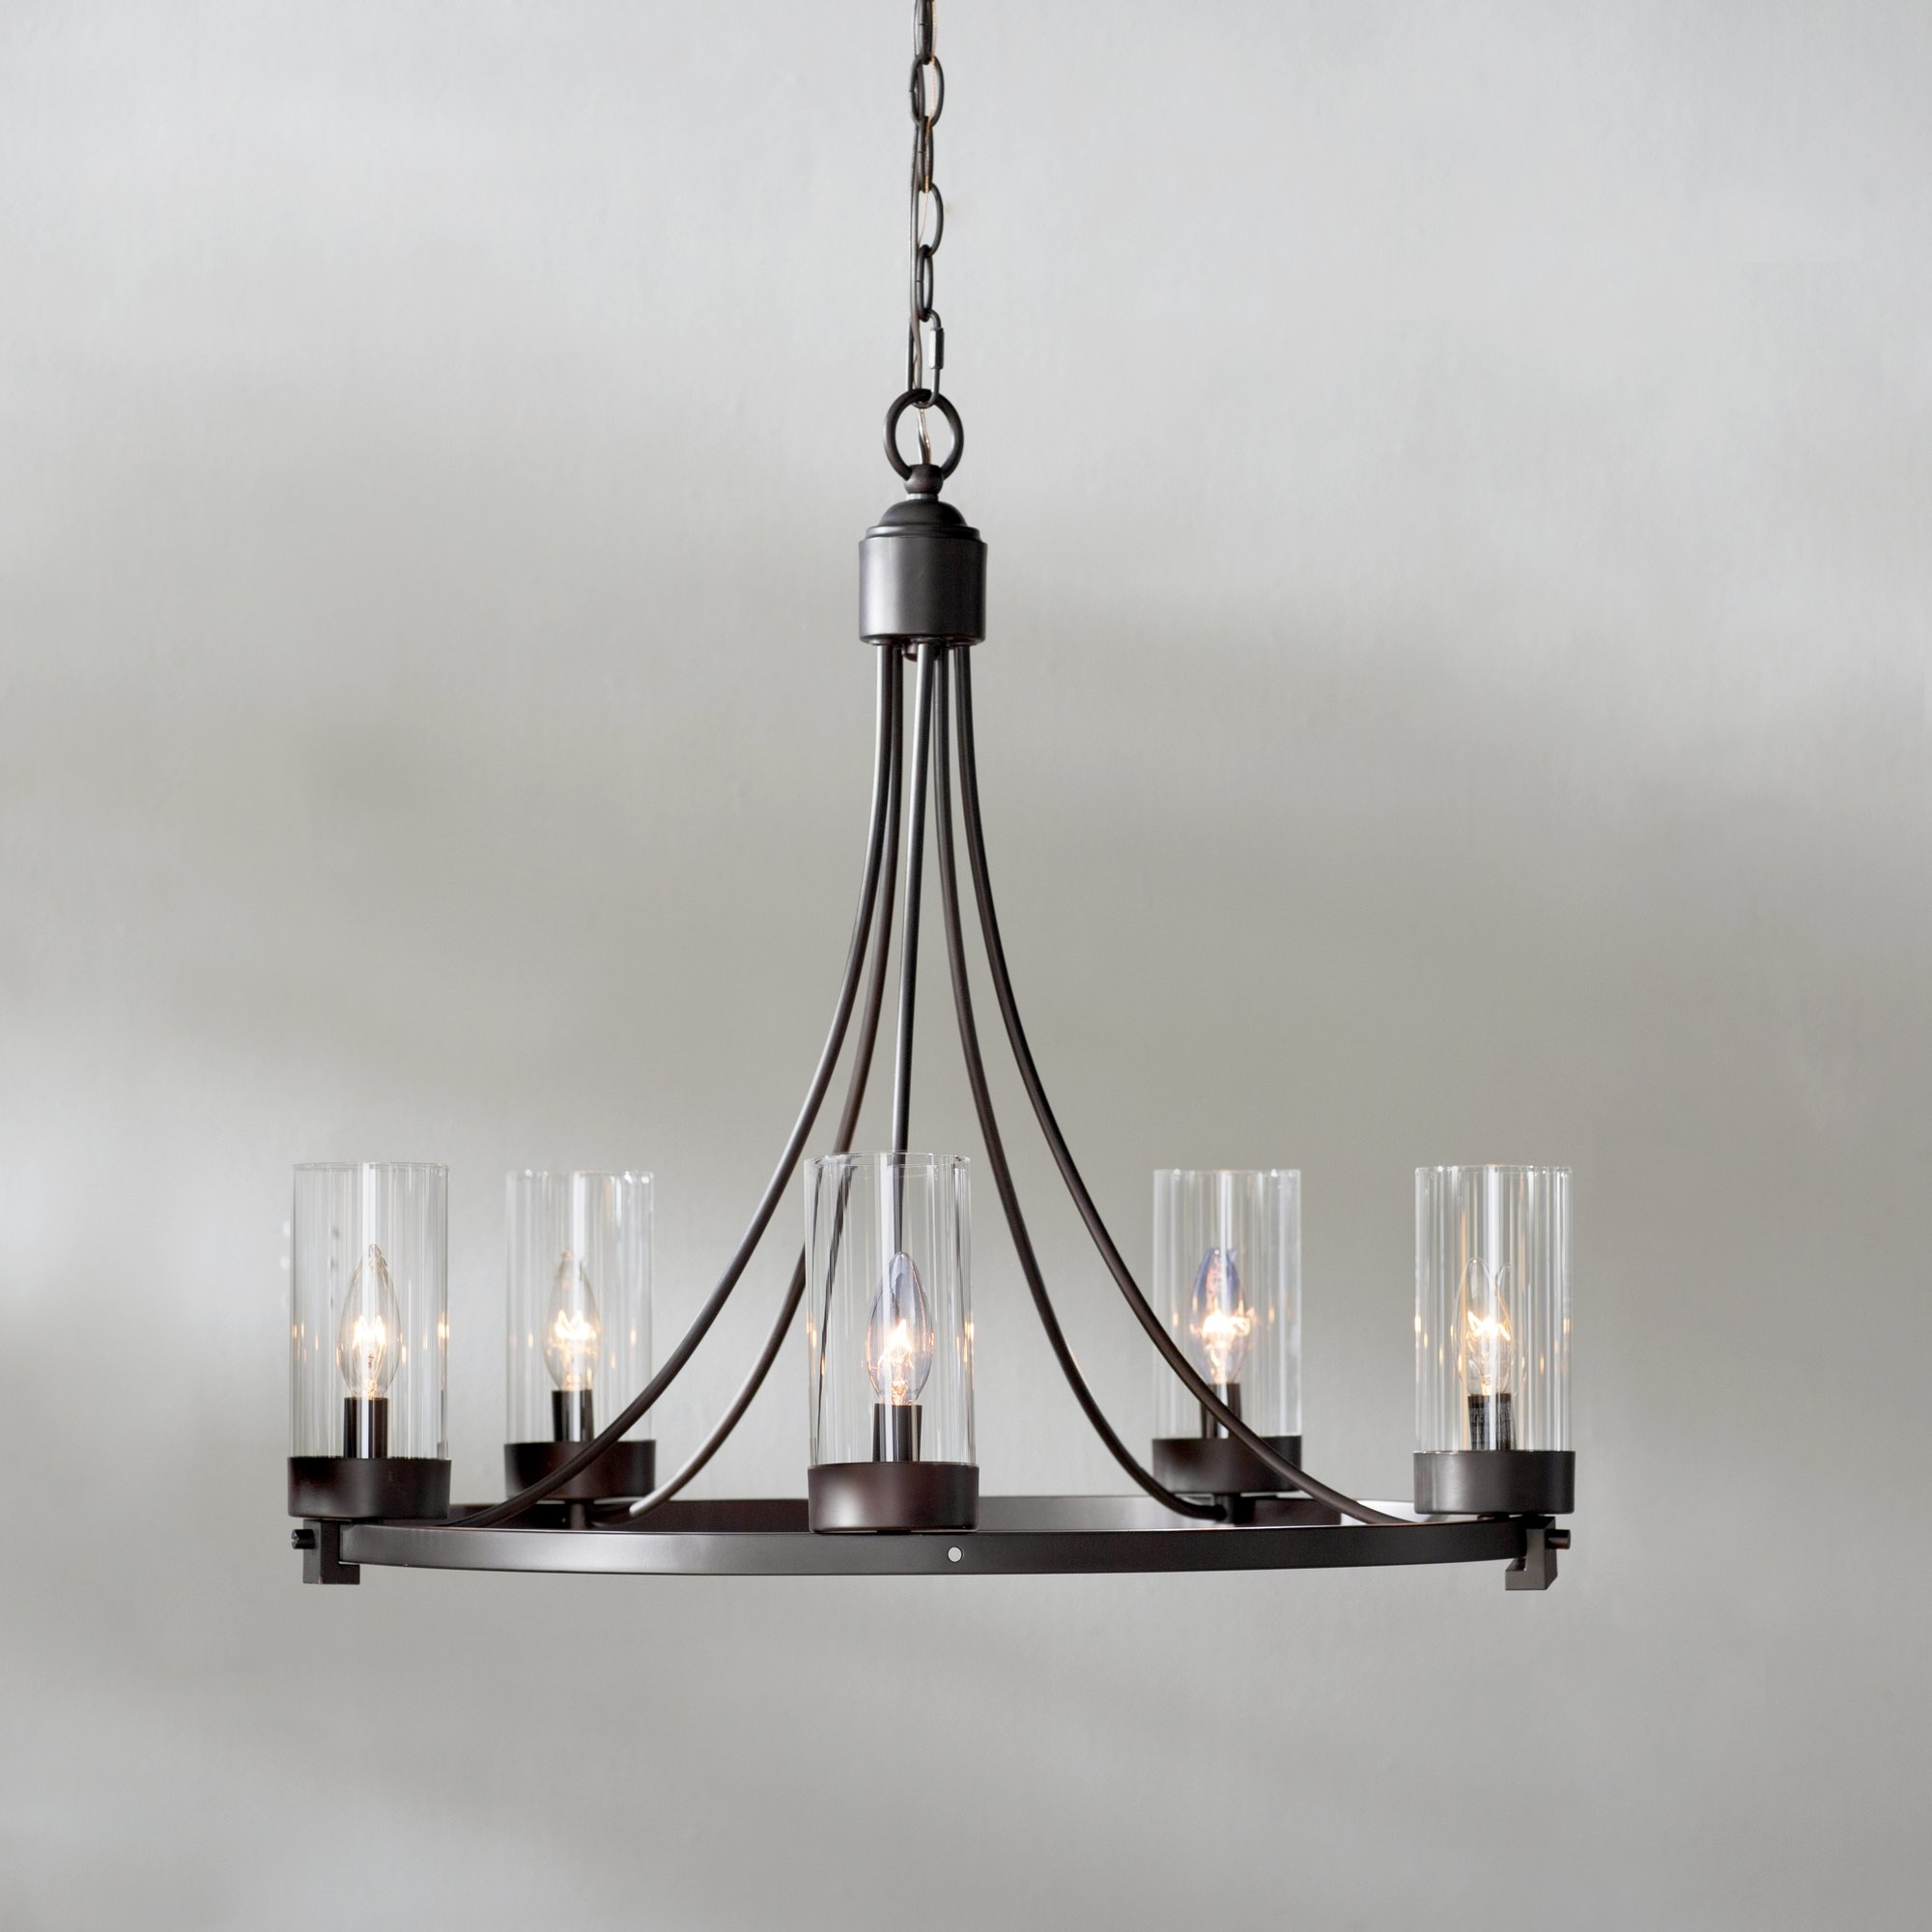 Georgina 5 Light Candle Chandelier Reviews Joss Main In Candle Chandelier (Image 6 of 15)